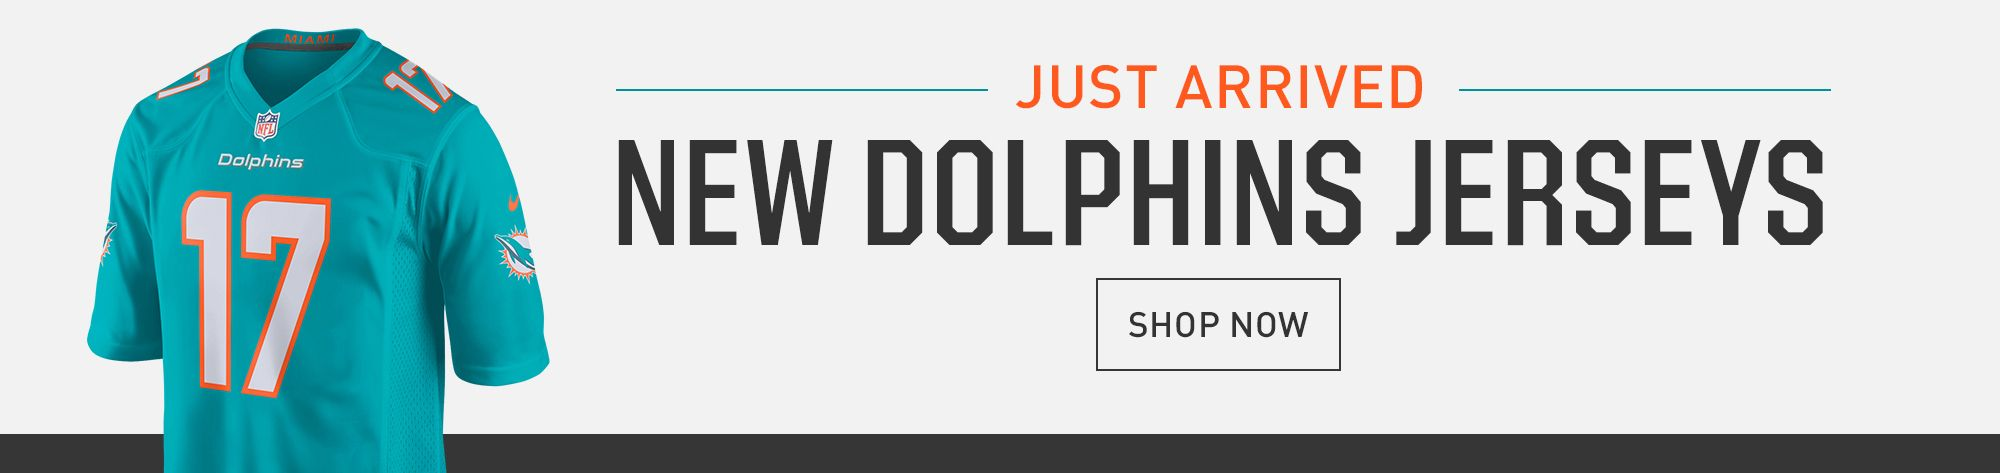 New Dolphins Jersey's - Shop Now